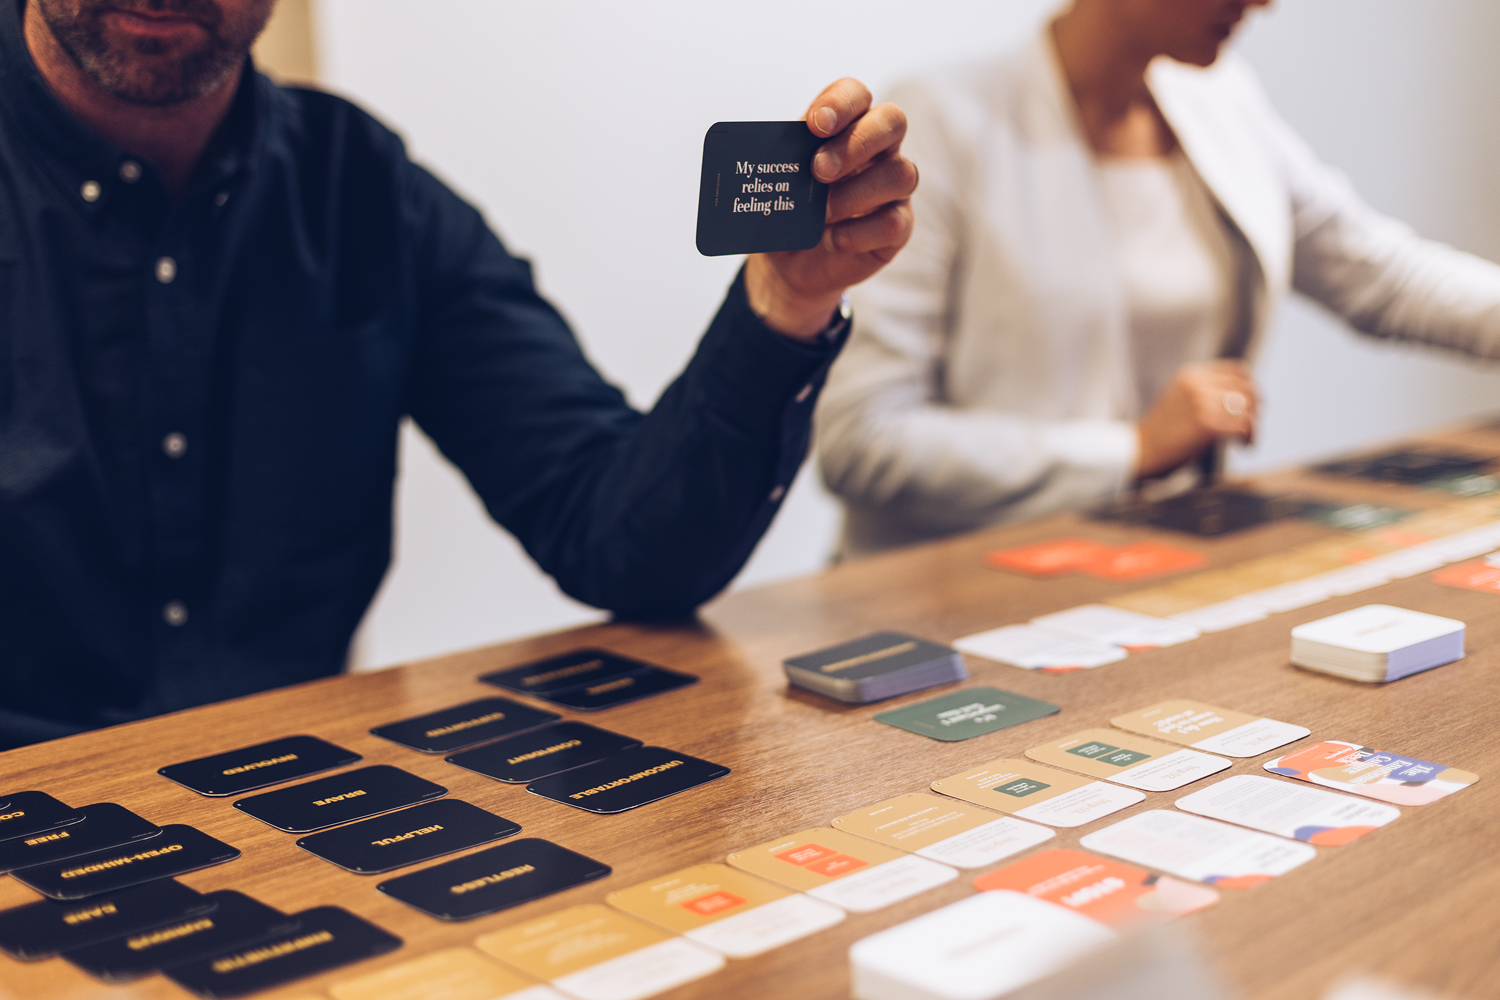 The Emotional Culture Deck helps leaders design and build their culture. The deck brings your people together to help you uncover the motivations of your people.